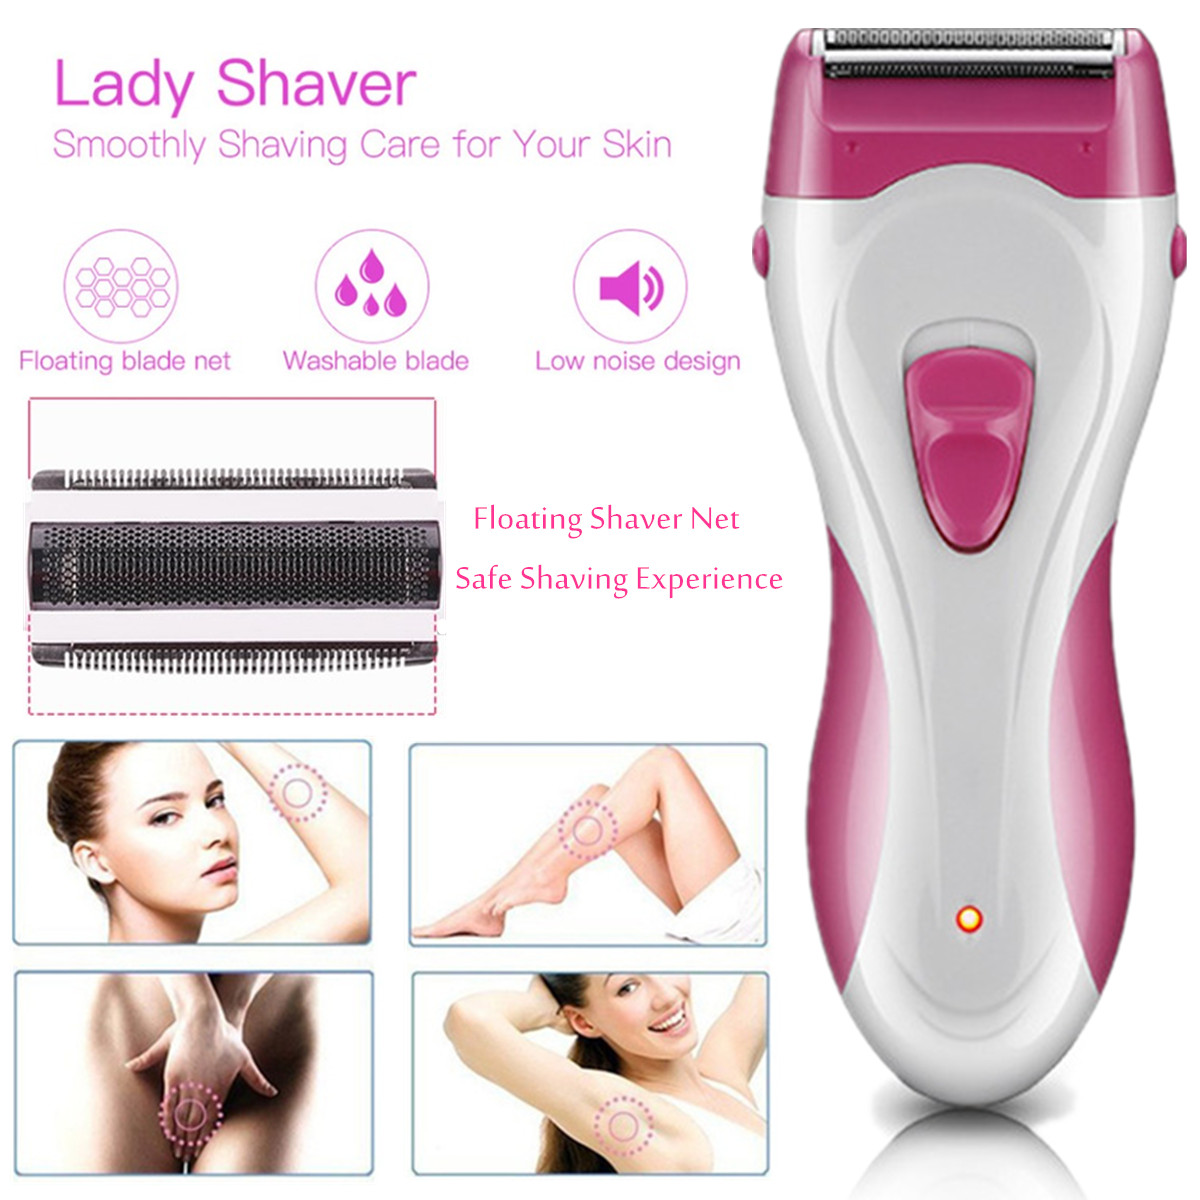 SG-661 Womens Electric Lady Shaver Razor Epilator Arm Leg Armpit Body Hair Remover Trimmer Waterproof Rechargable for Face Body